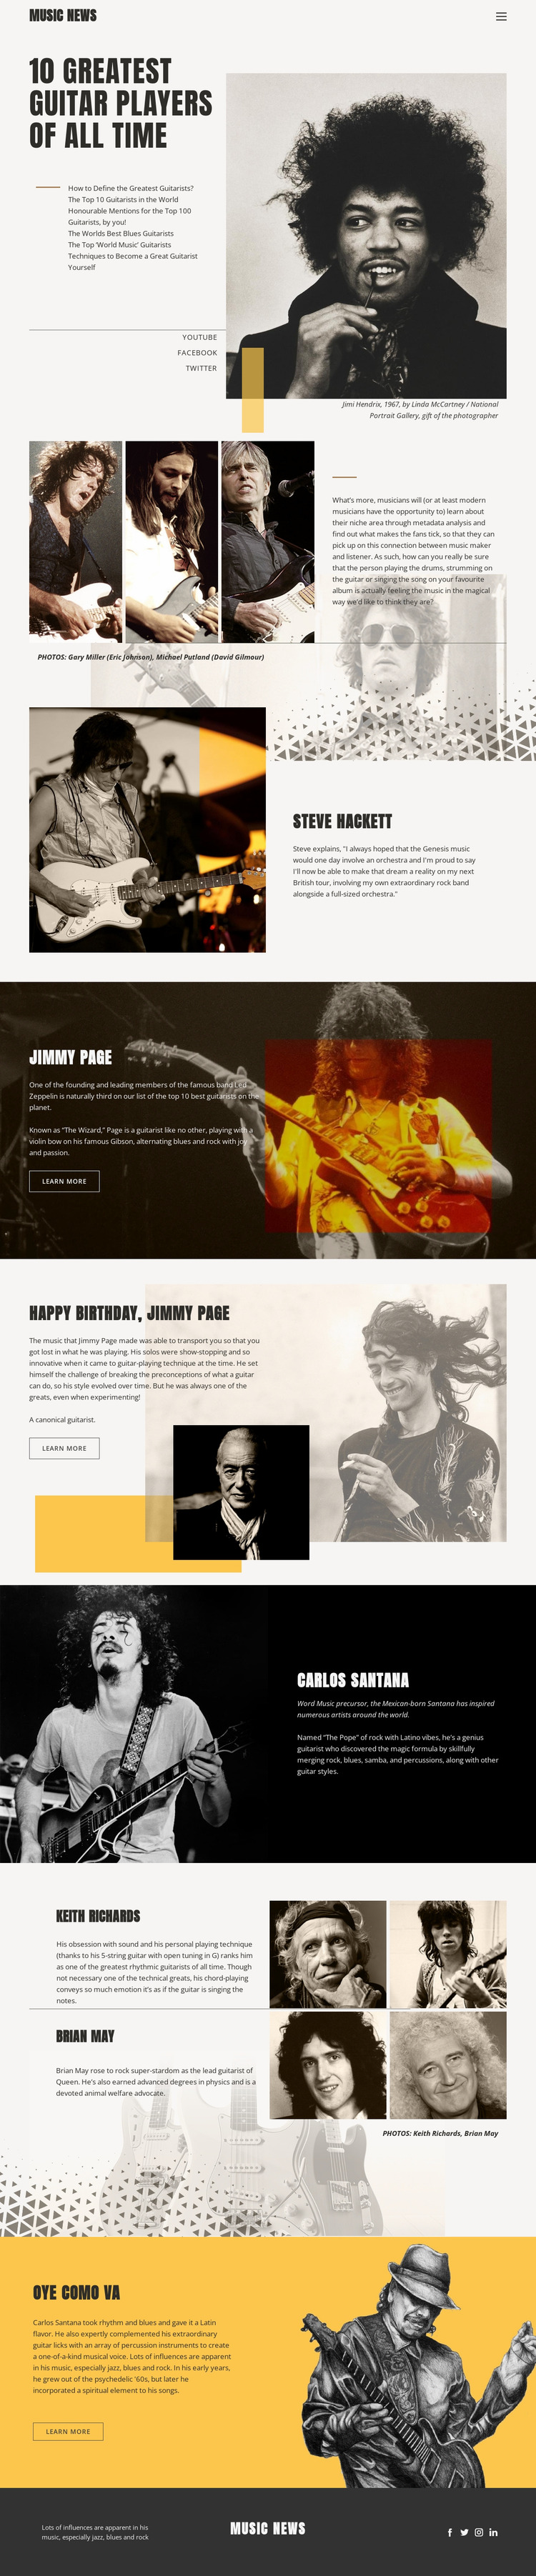 The Top Guitar Players Html Website Builder